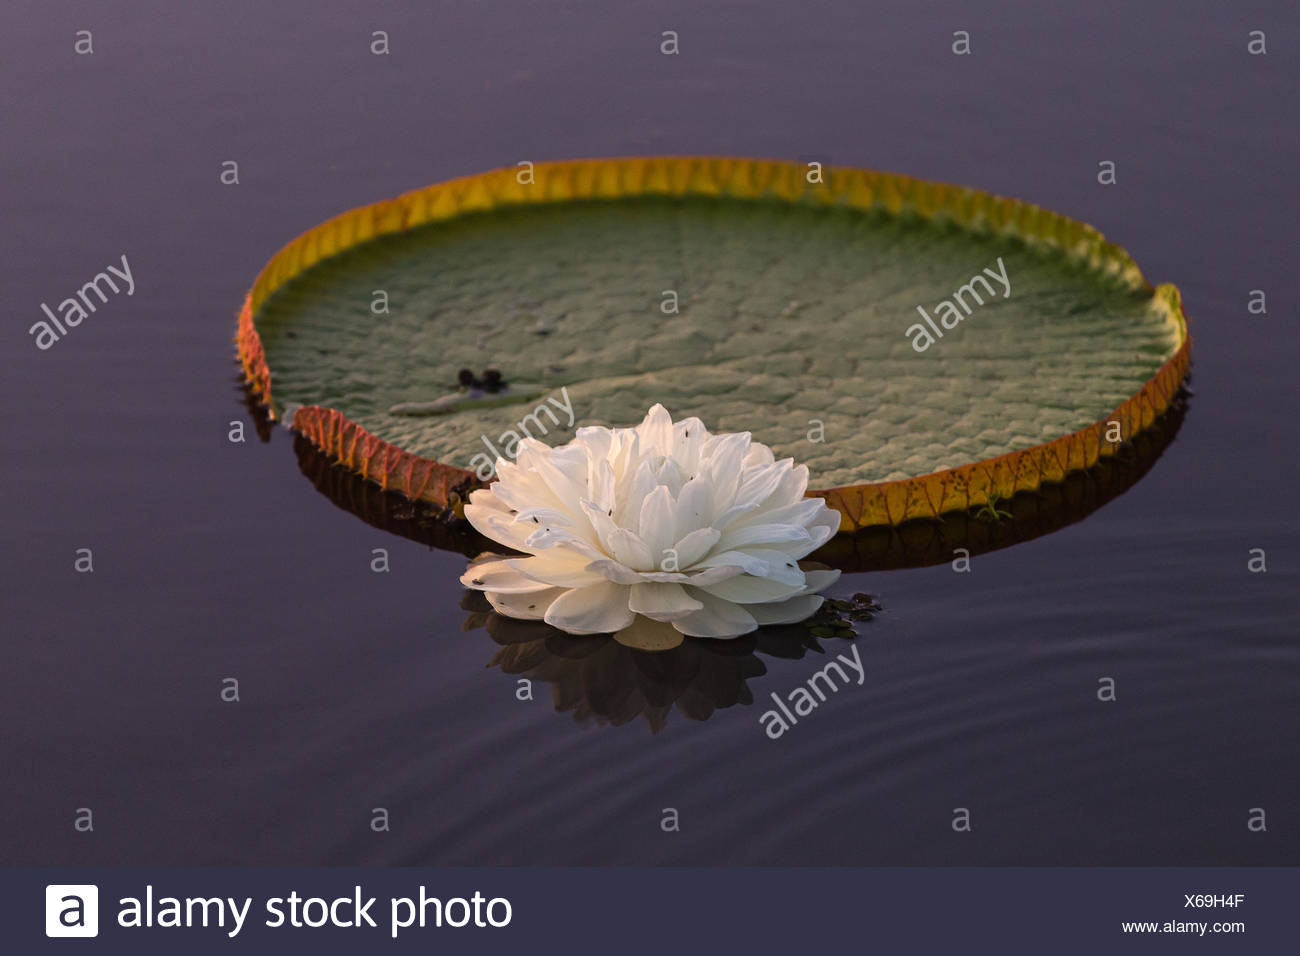 Giant lily pad and lotus flower in the pantanal region of brazil giant lily pad and lotus flower in the pantanal region of brazil izmirmasajfo